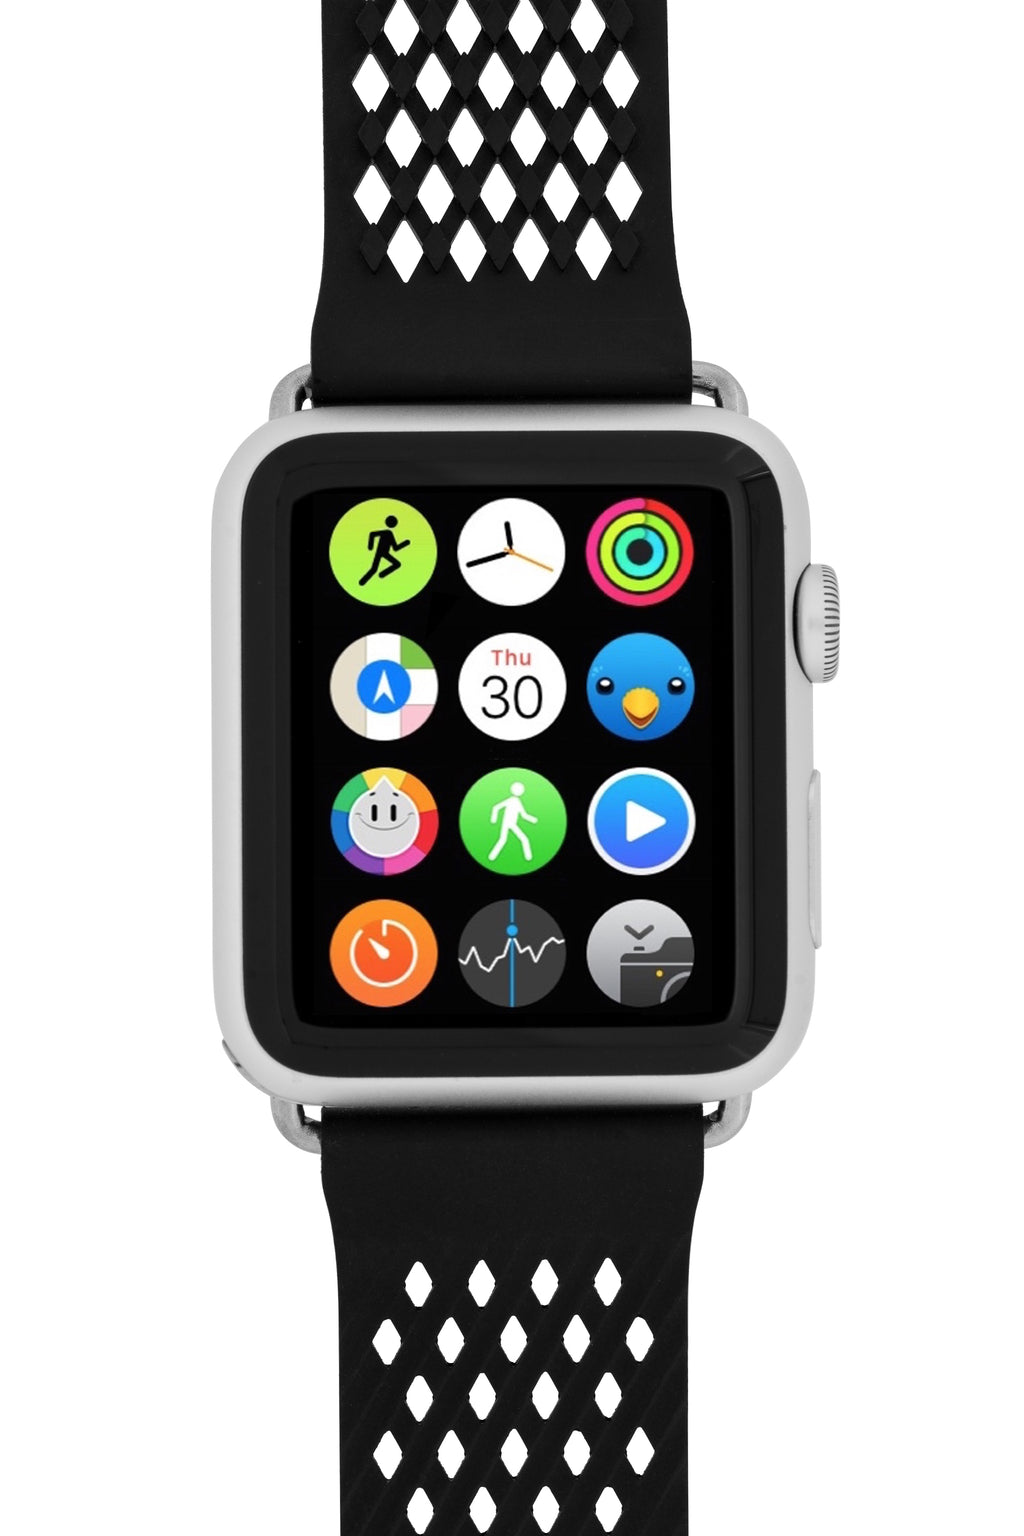 Noomoon LABB Interlocking Watch Strap for Apple Watch in BLACK with SILVER Hardware